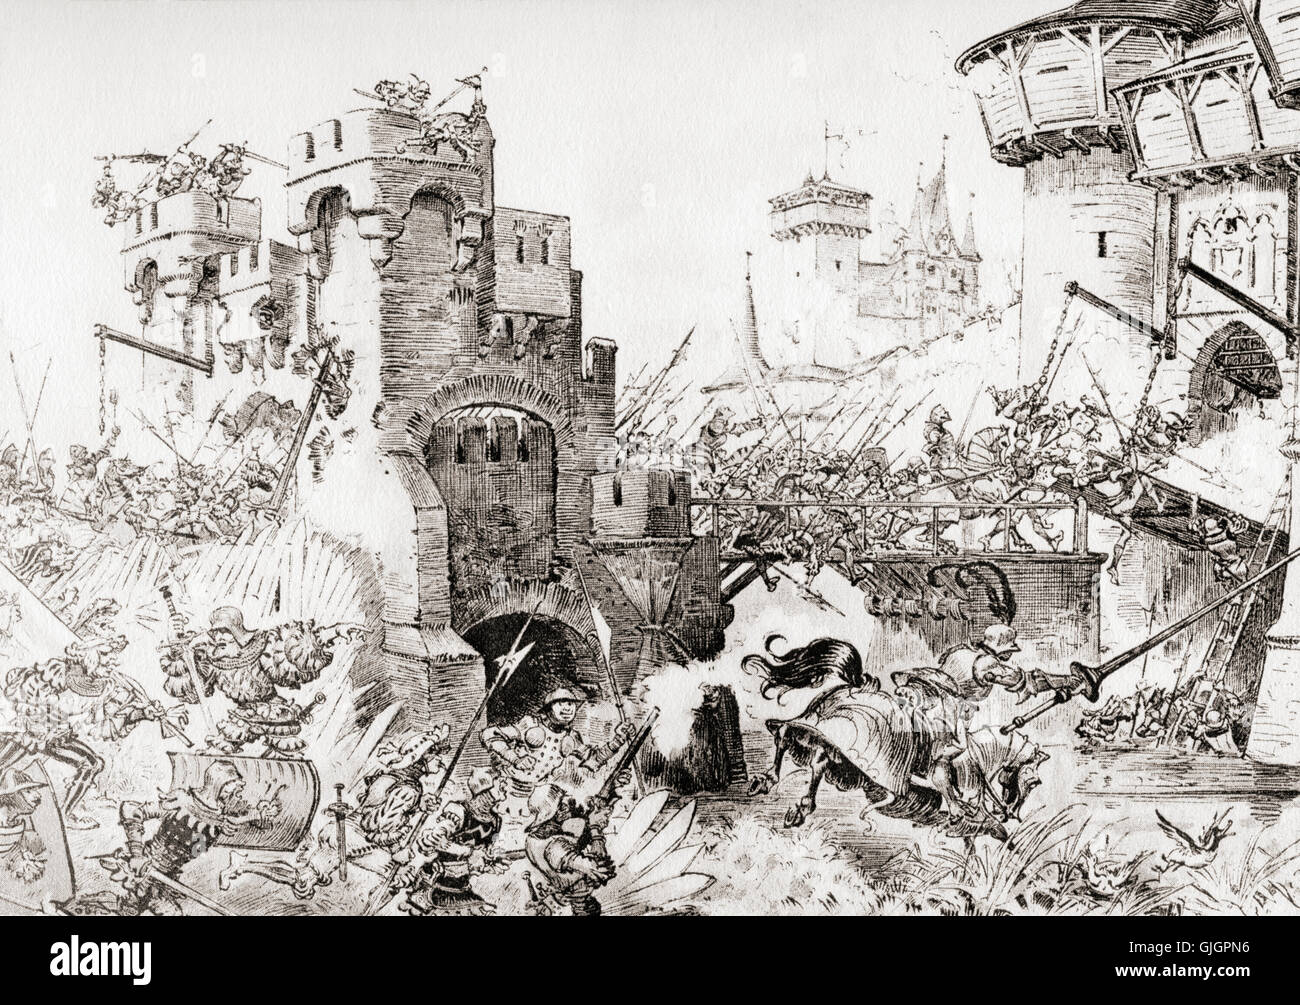 Prise de la Roche Clermaud or Taking the rock Clermond.  After the  illustration by Albert Robida for Gargantua - Stock Image